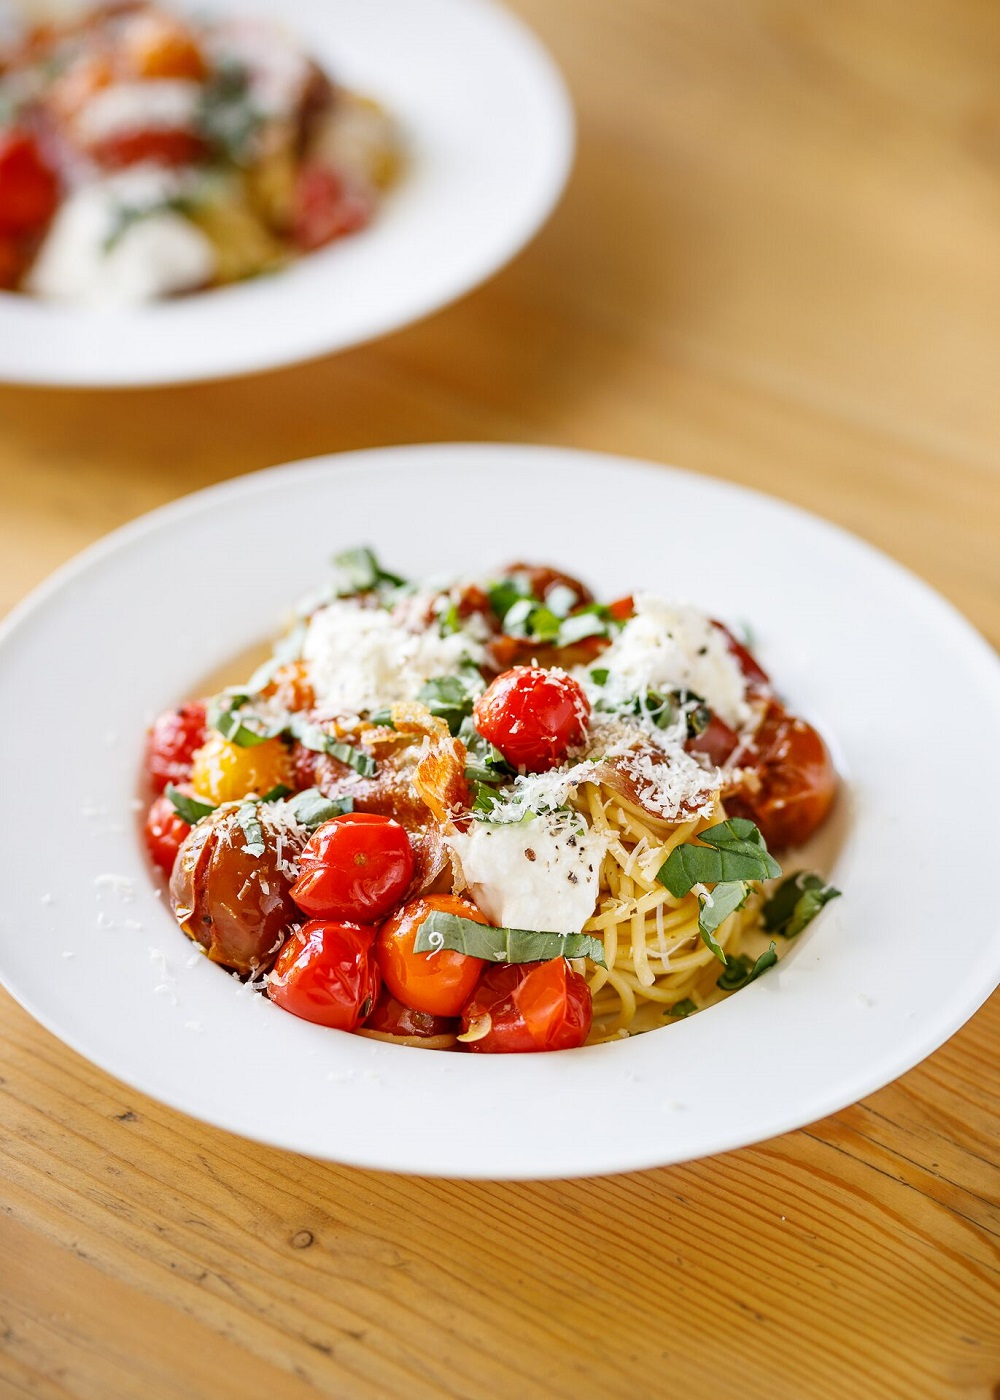 Isle Of Wight Roasted Tomato, Prosciutto And Burrata Spaghetti